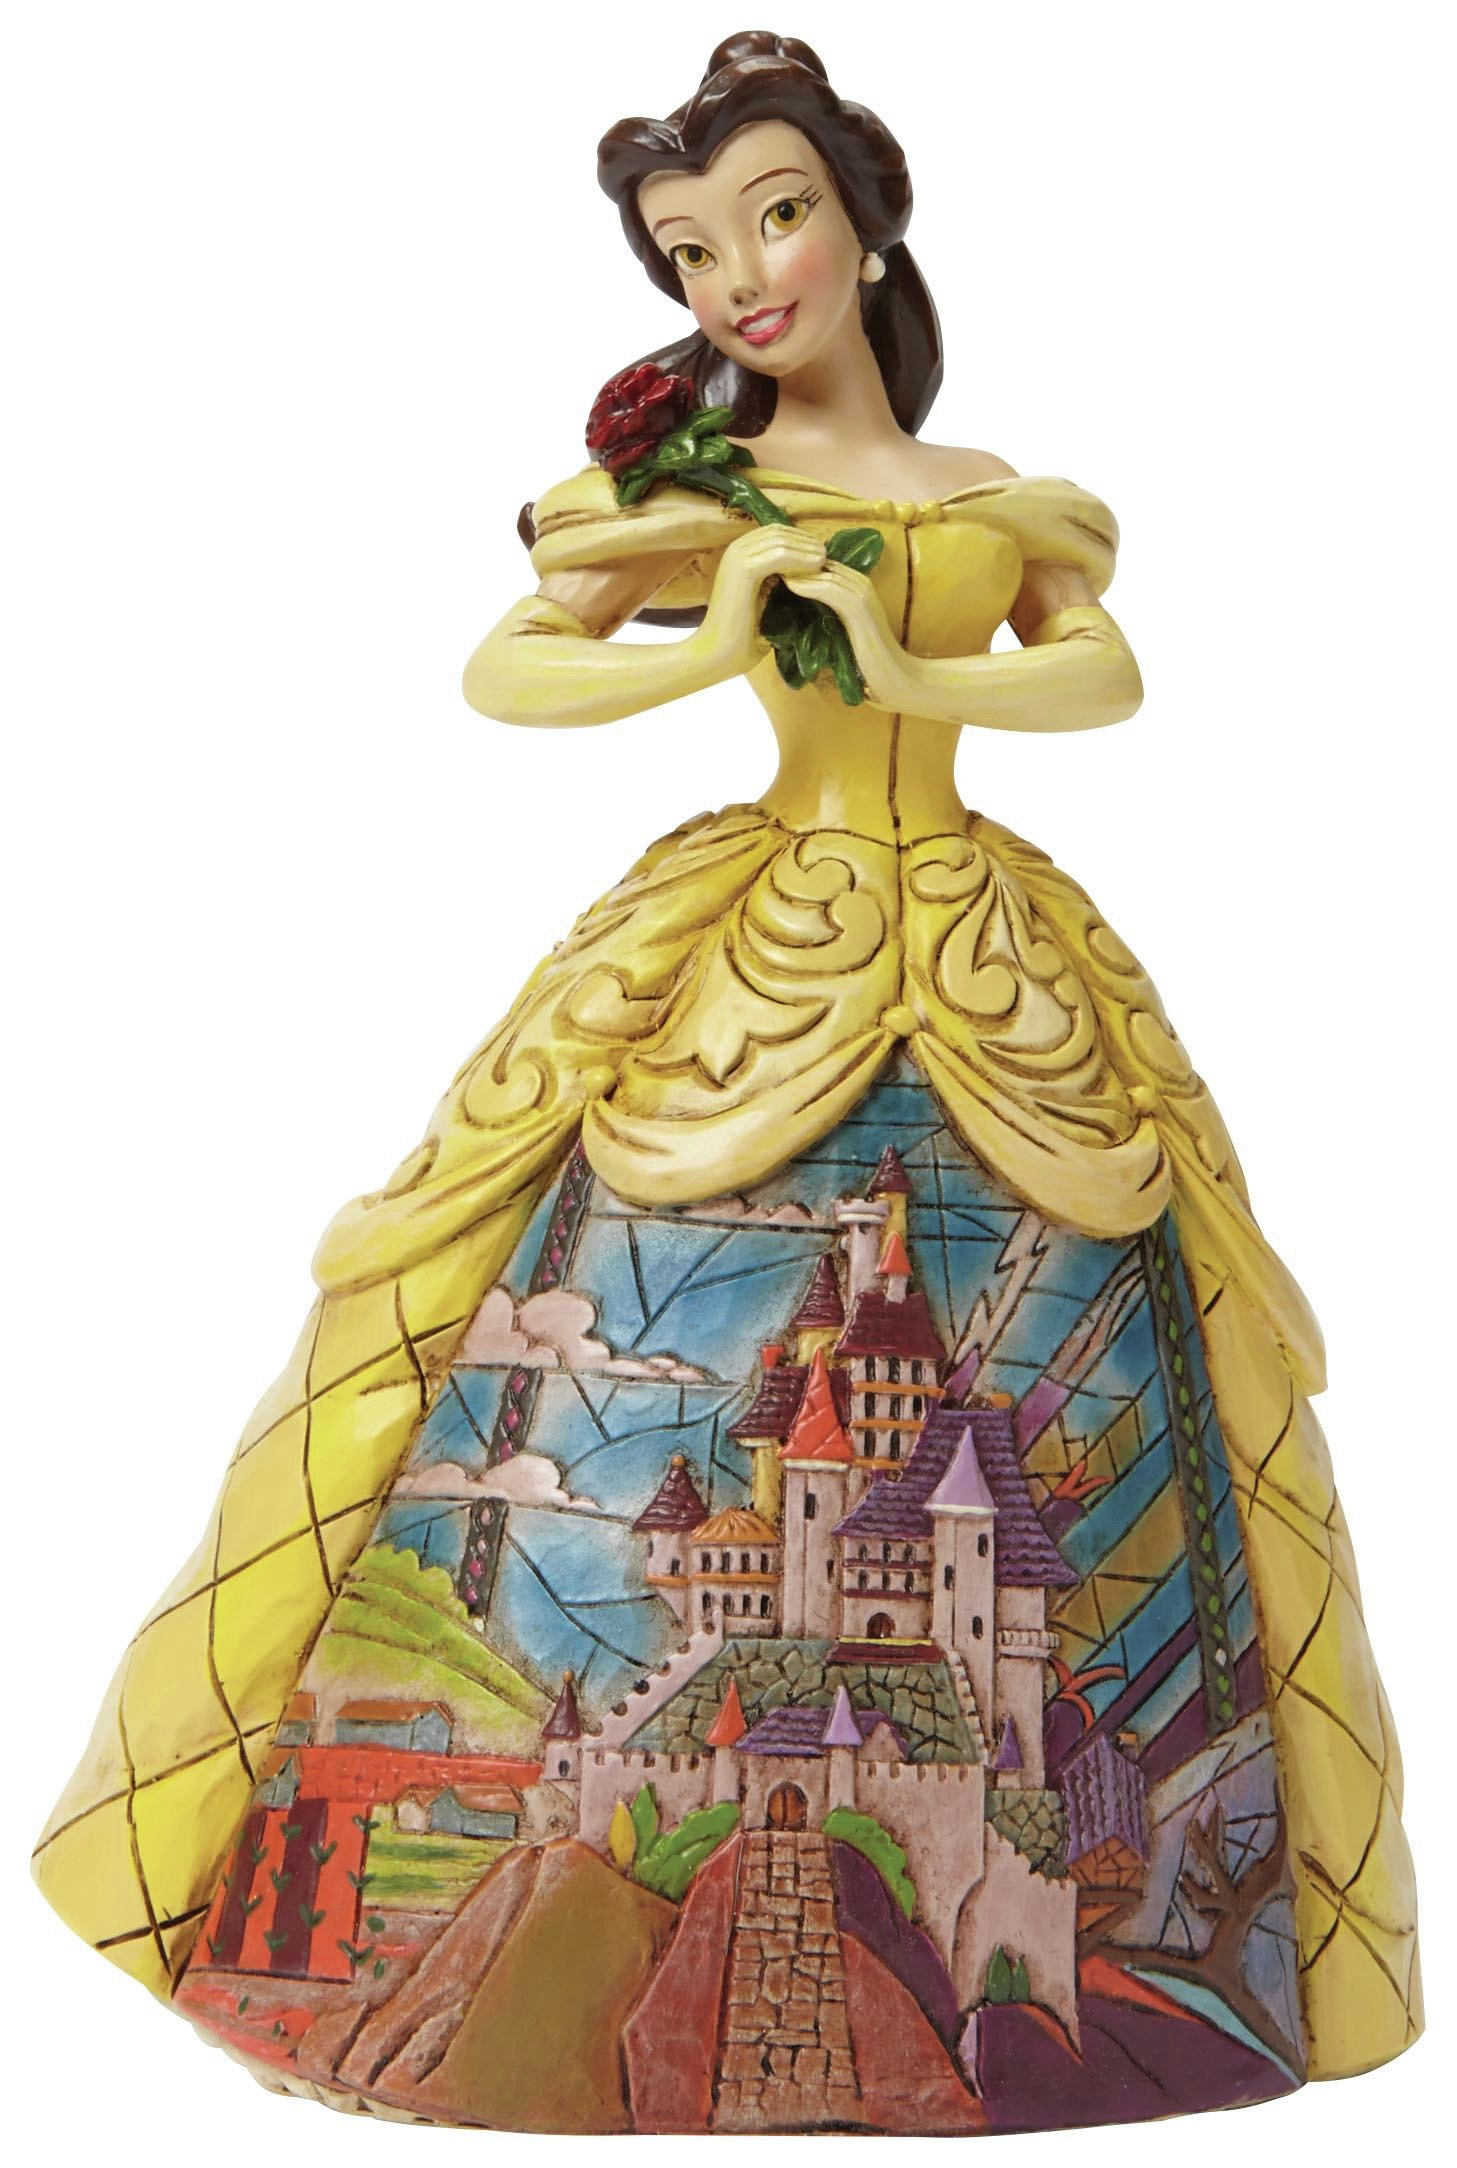 Image of Disney Traditions Enchanted Belle Figurine.